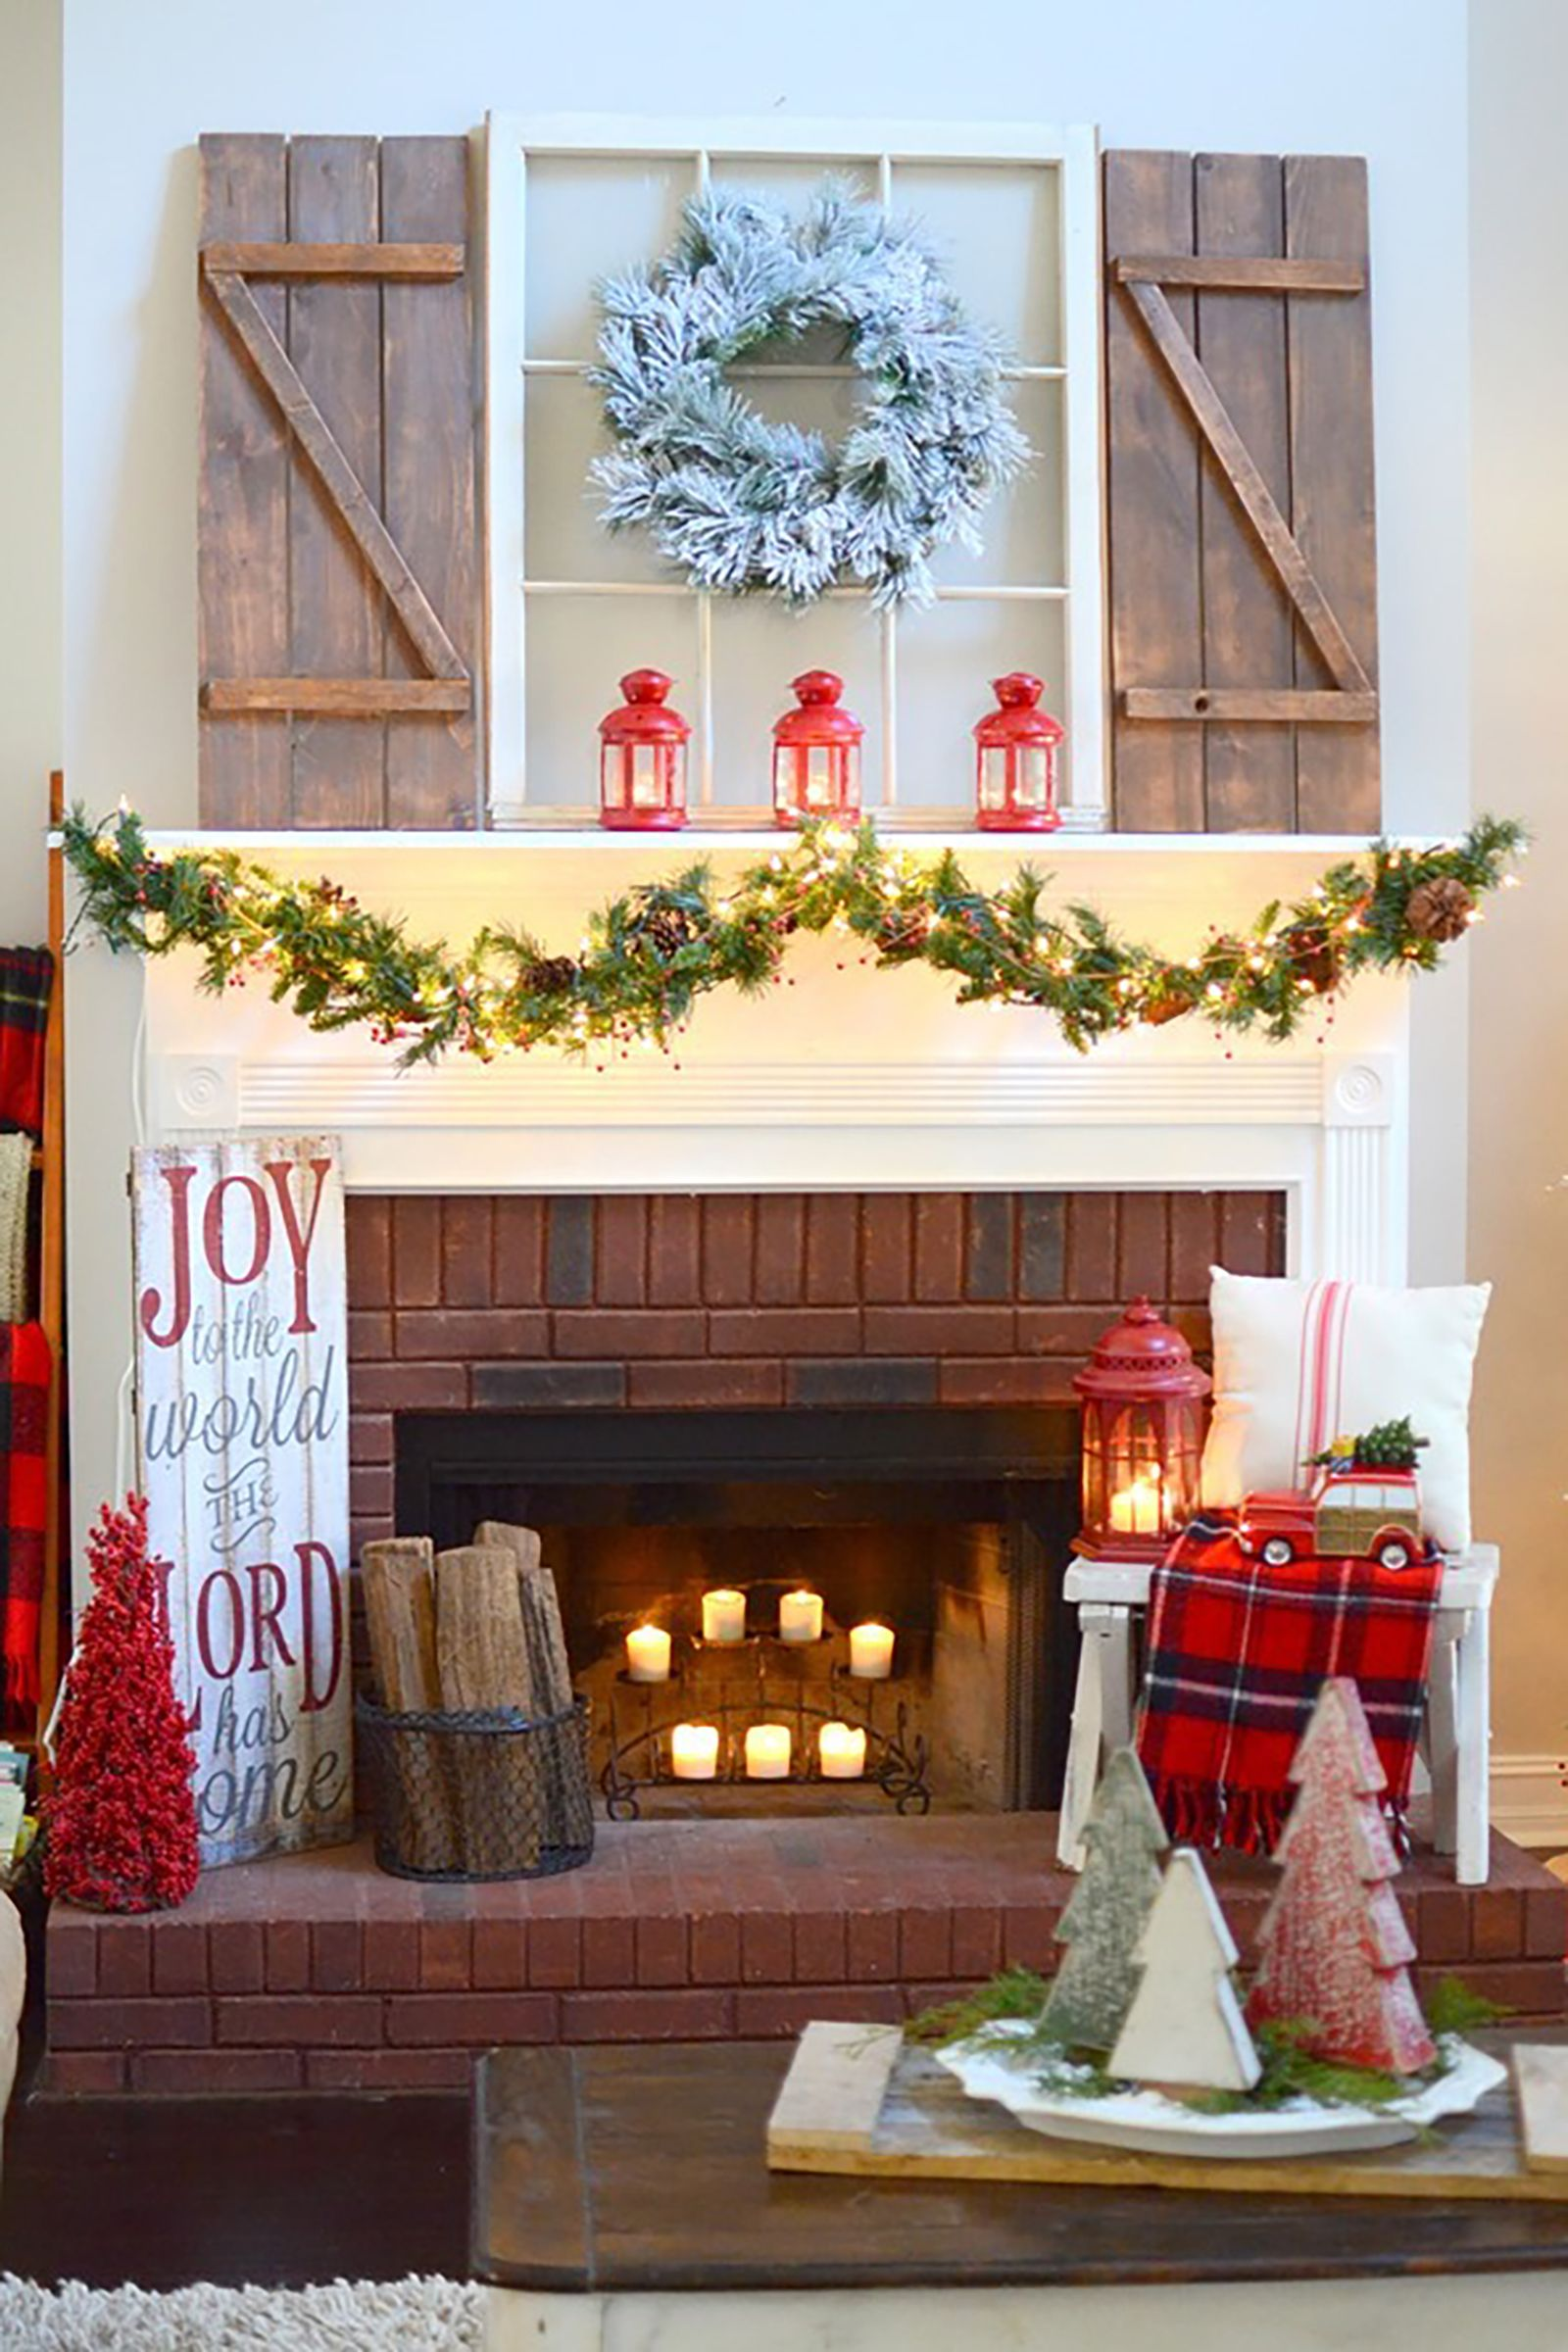 Beautiful ideas for decorating a holiday mantel